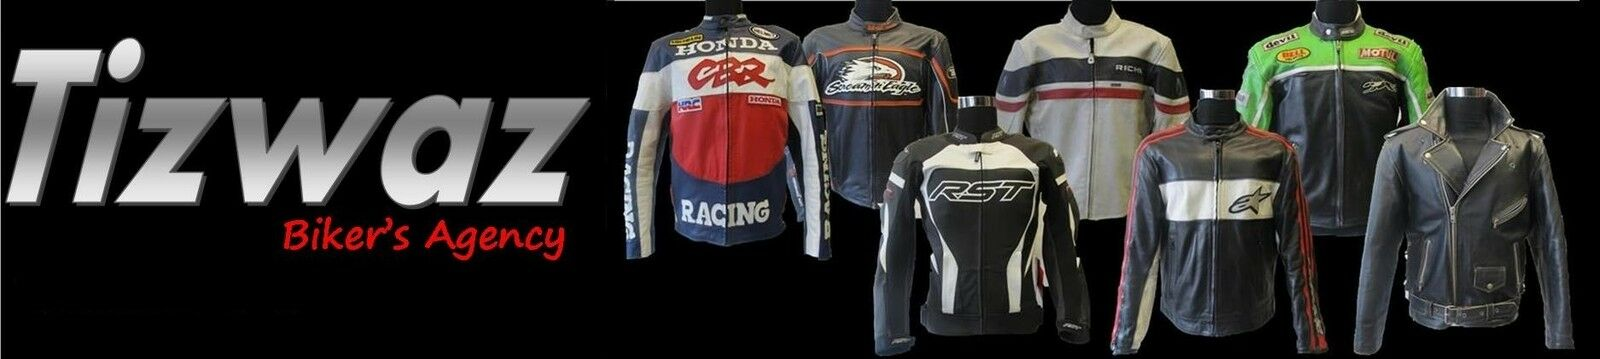 Tizwaz Motorcycle Clothing